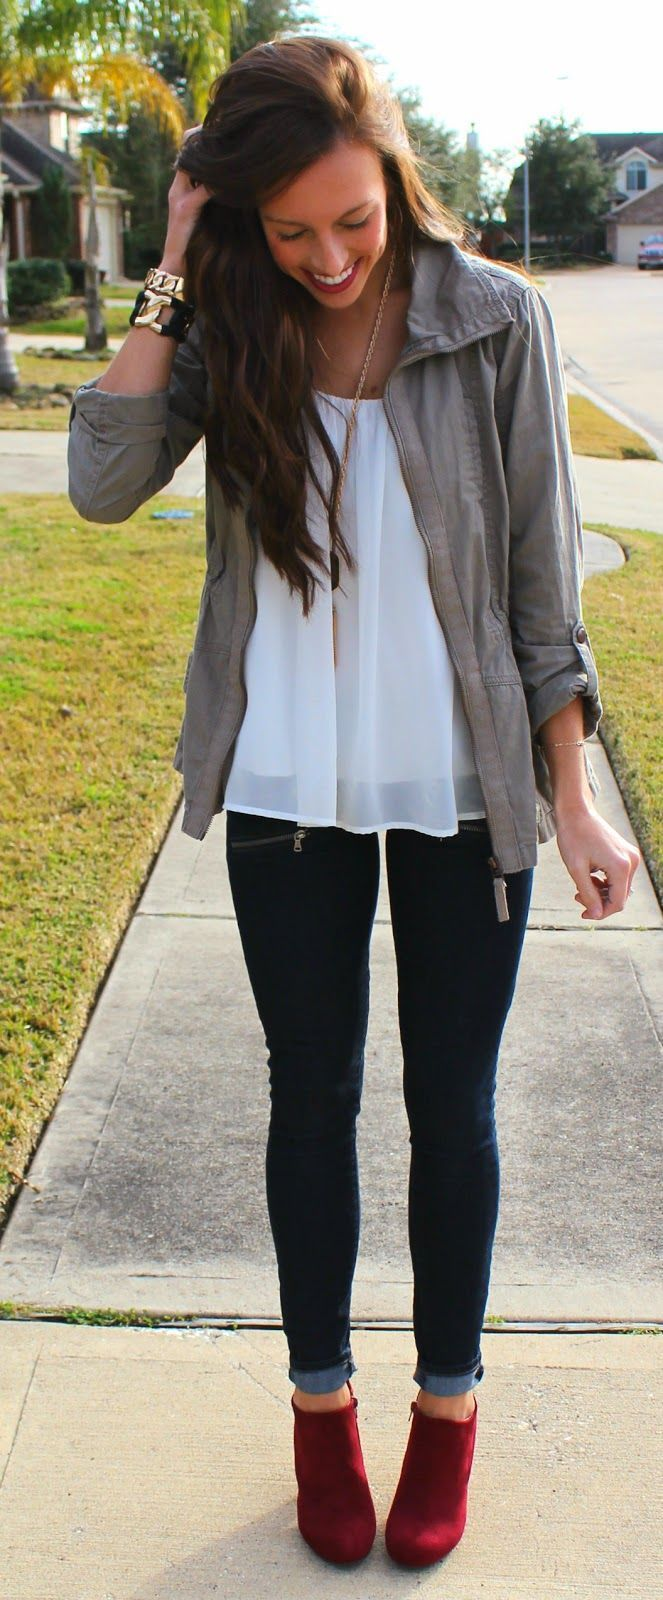 I love the ankle jeans but not their zippers? A more natural Jean would be perfect in this outfit!